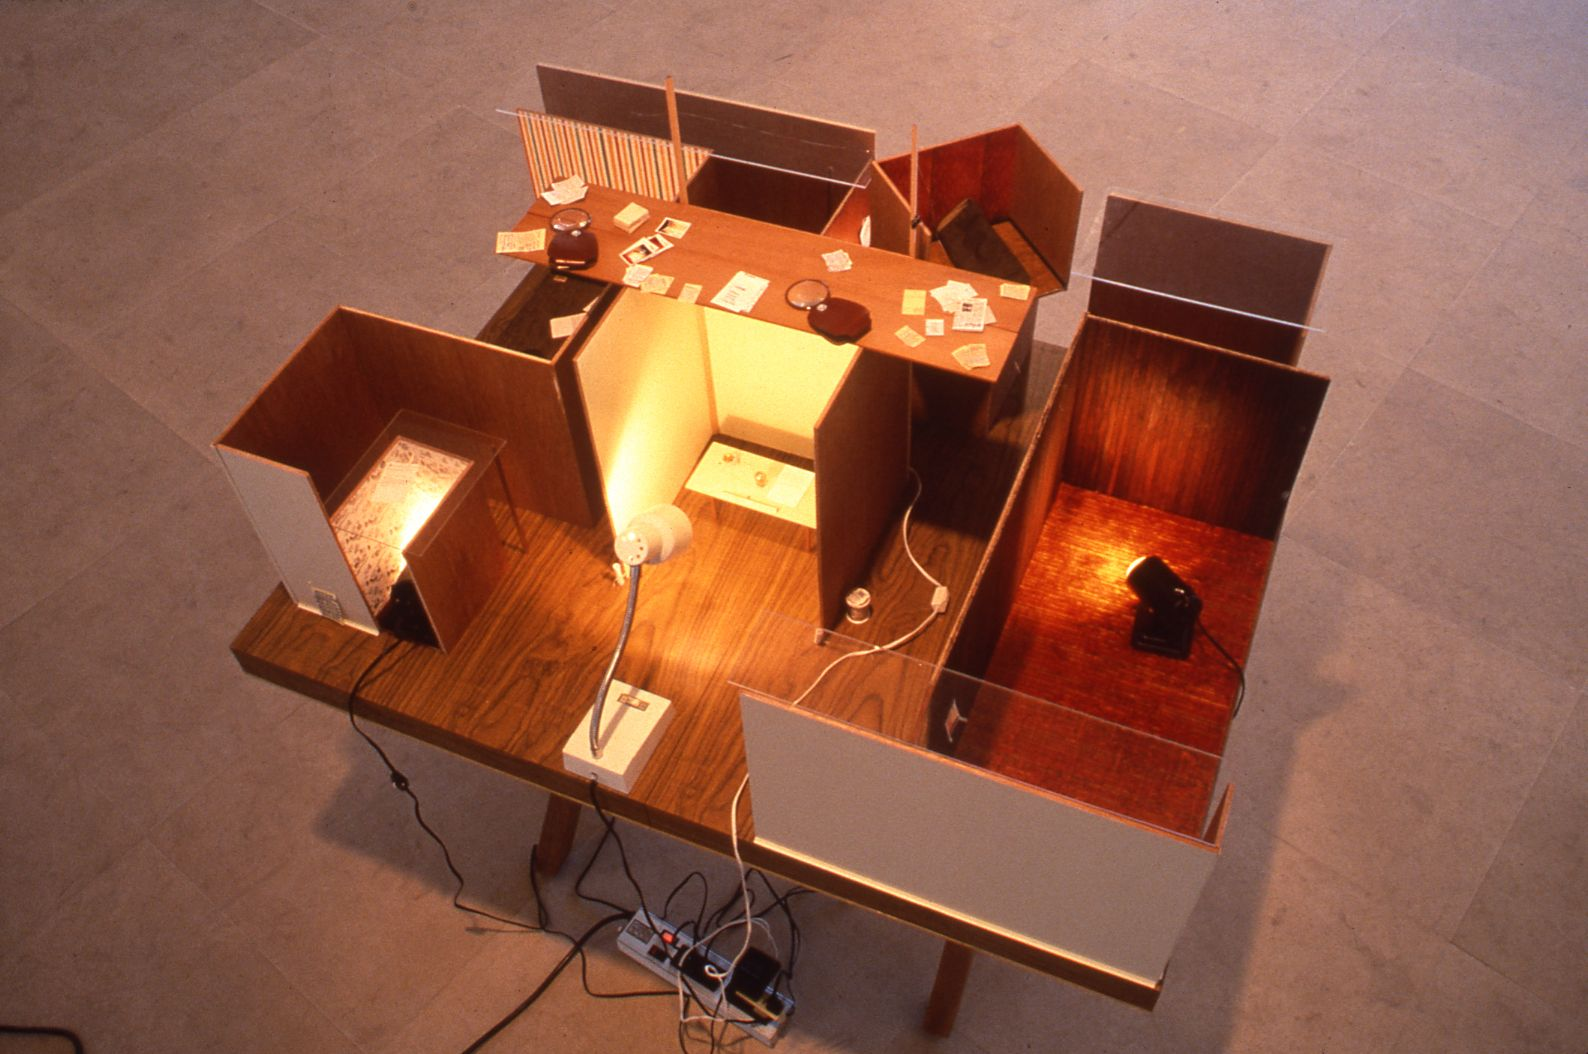 Julie Becker, Postersize Copy Machine, 1996, Mixed media, 36 x 48 x 51 1/2 inches